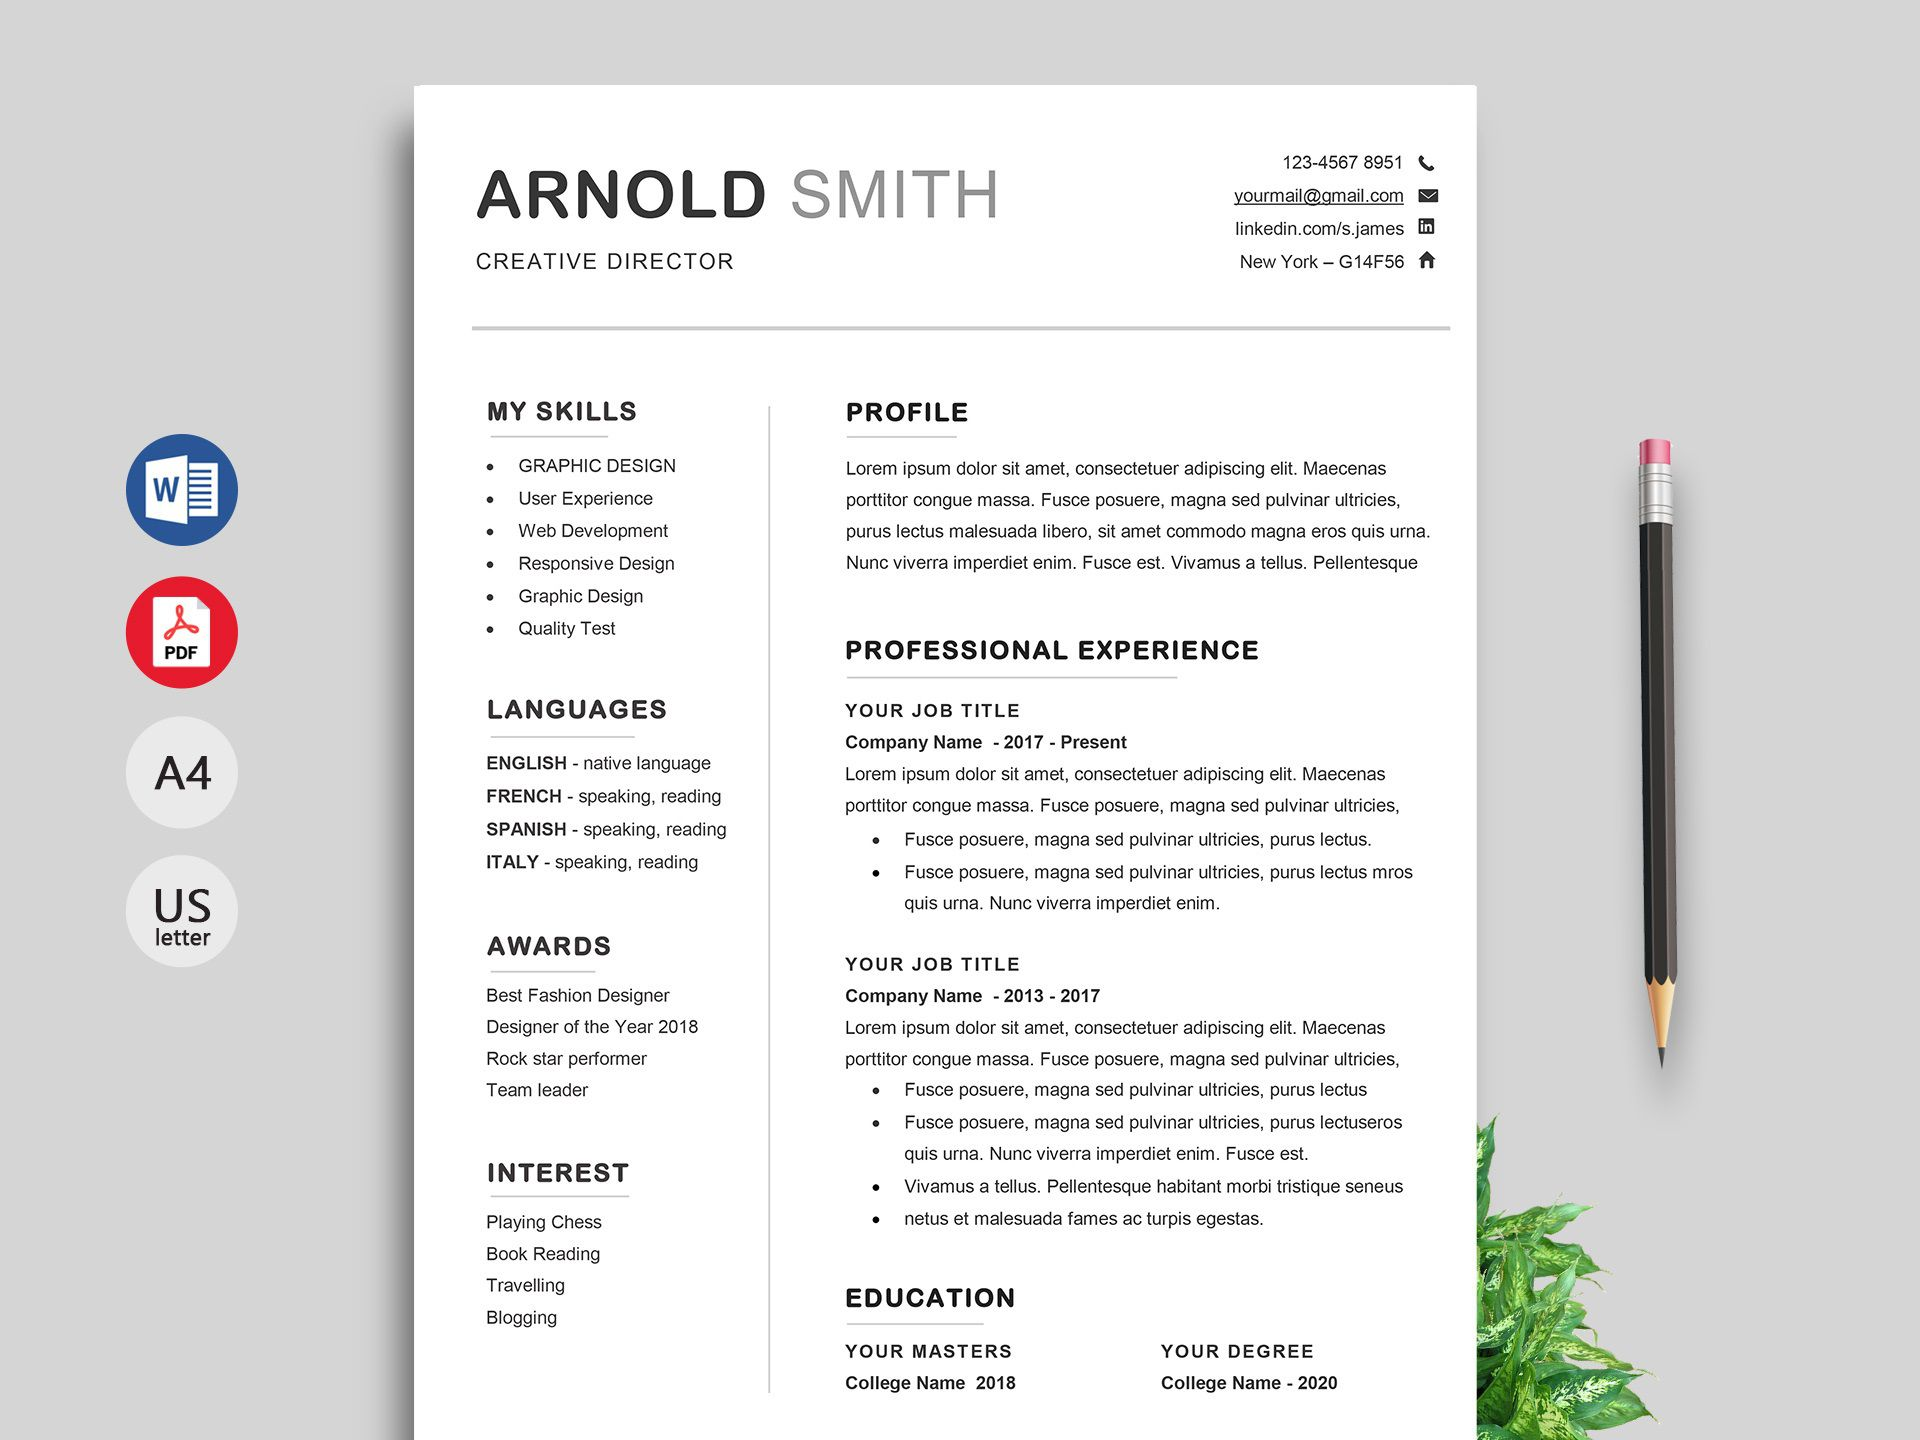 001 Outstanding Cv Template Free Download Word Doc Highest Clarity  Editable Document For Fresher Student EngineerFull